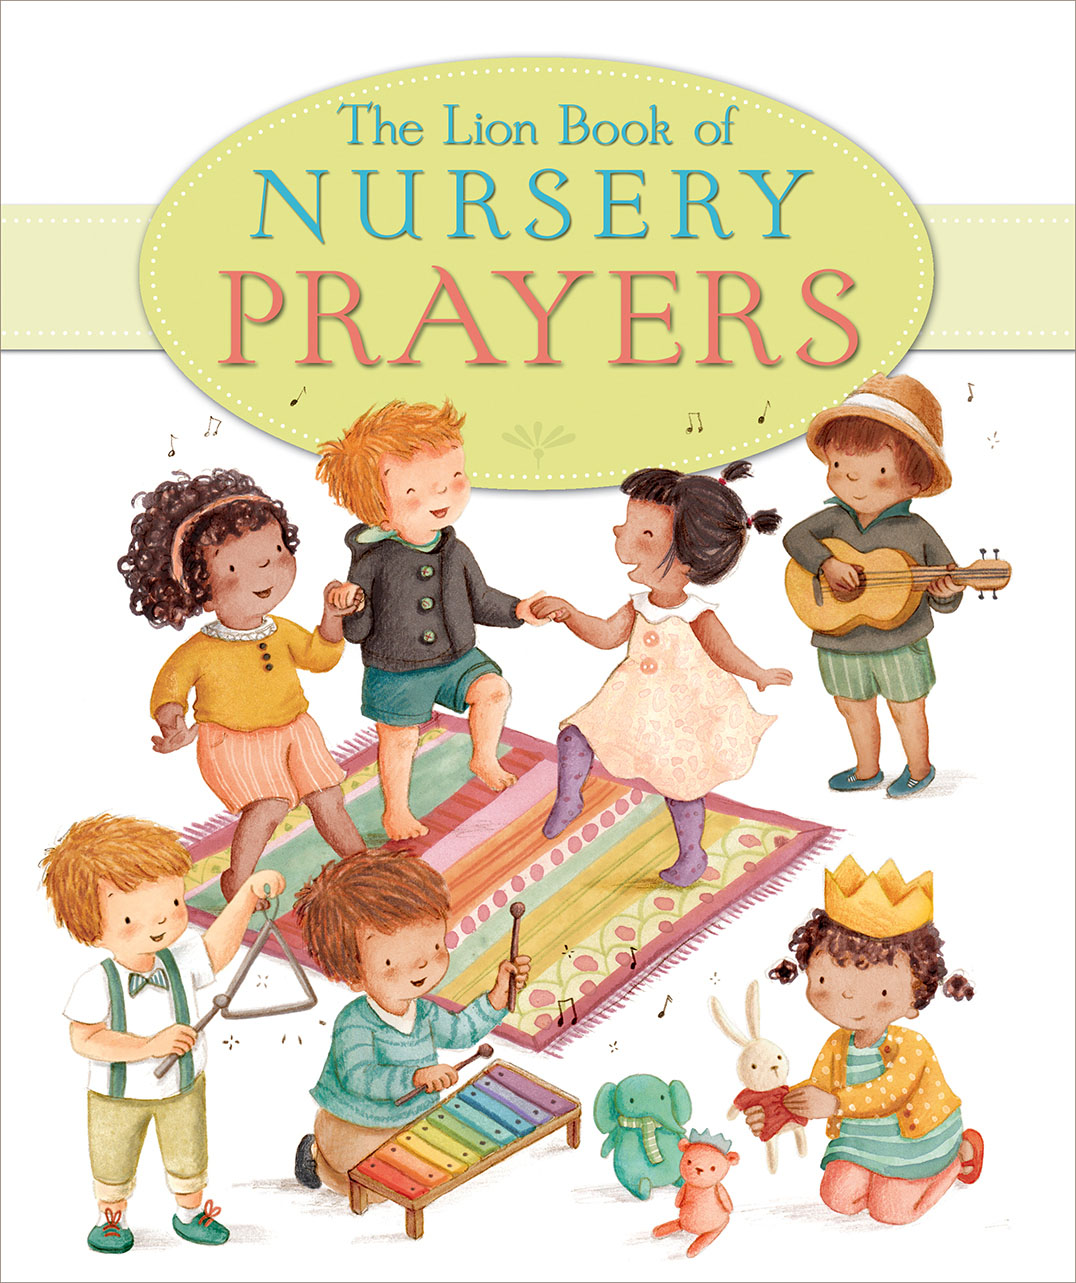 The Lion Book of Nursery Prayers